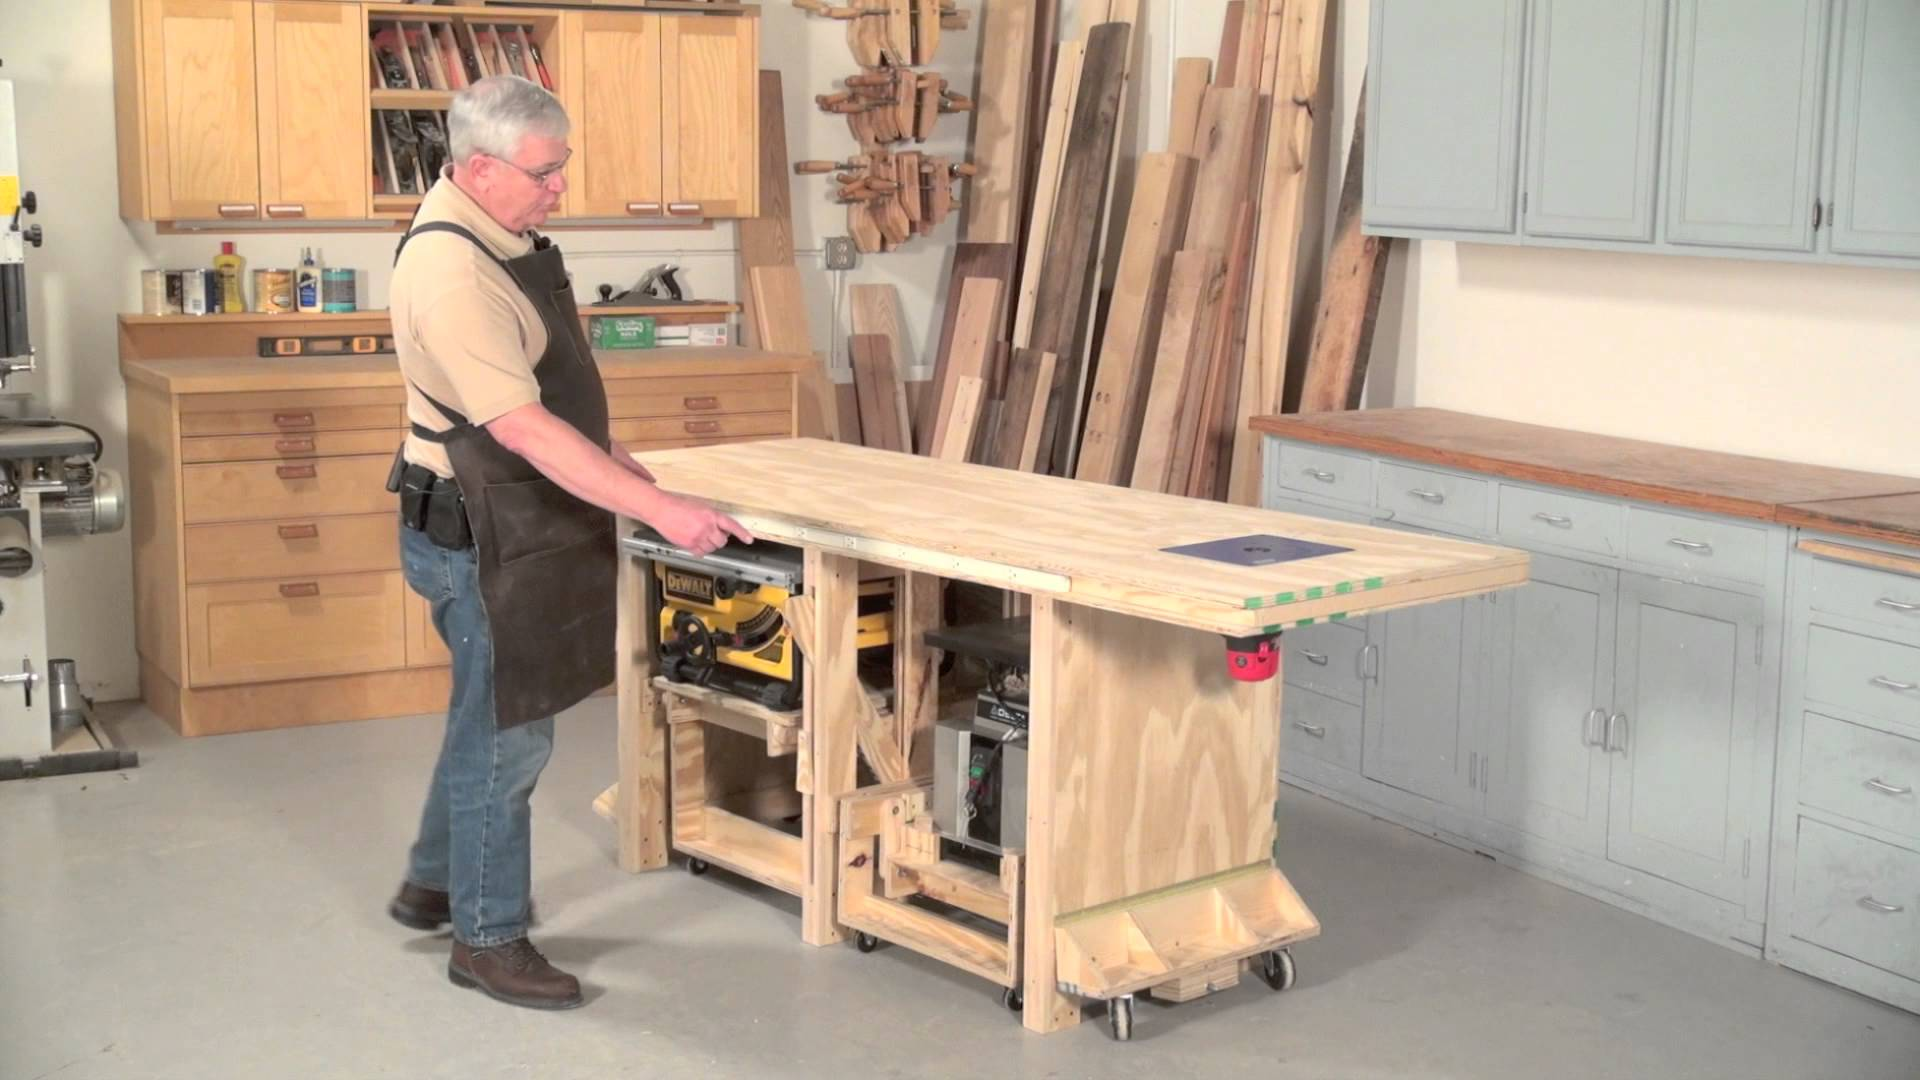 Woodworking Tool Bench Wood Project Ideas Guide To Get Professional Woodworking